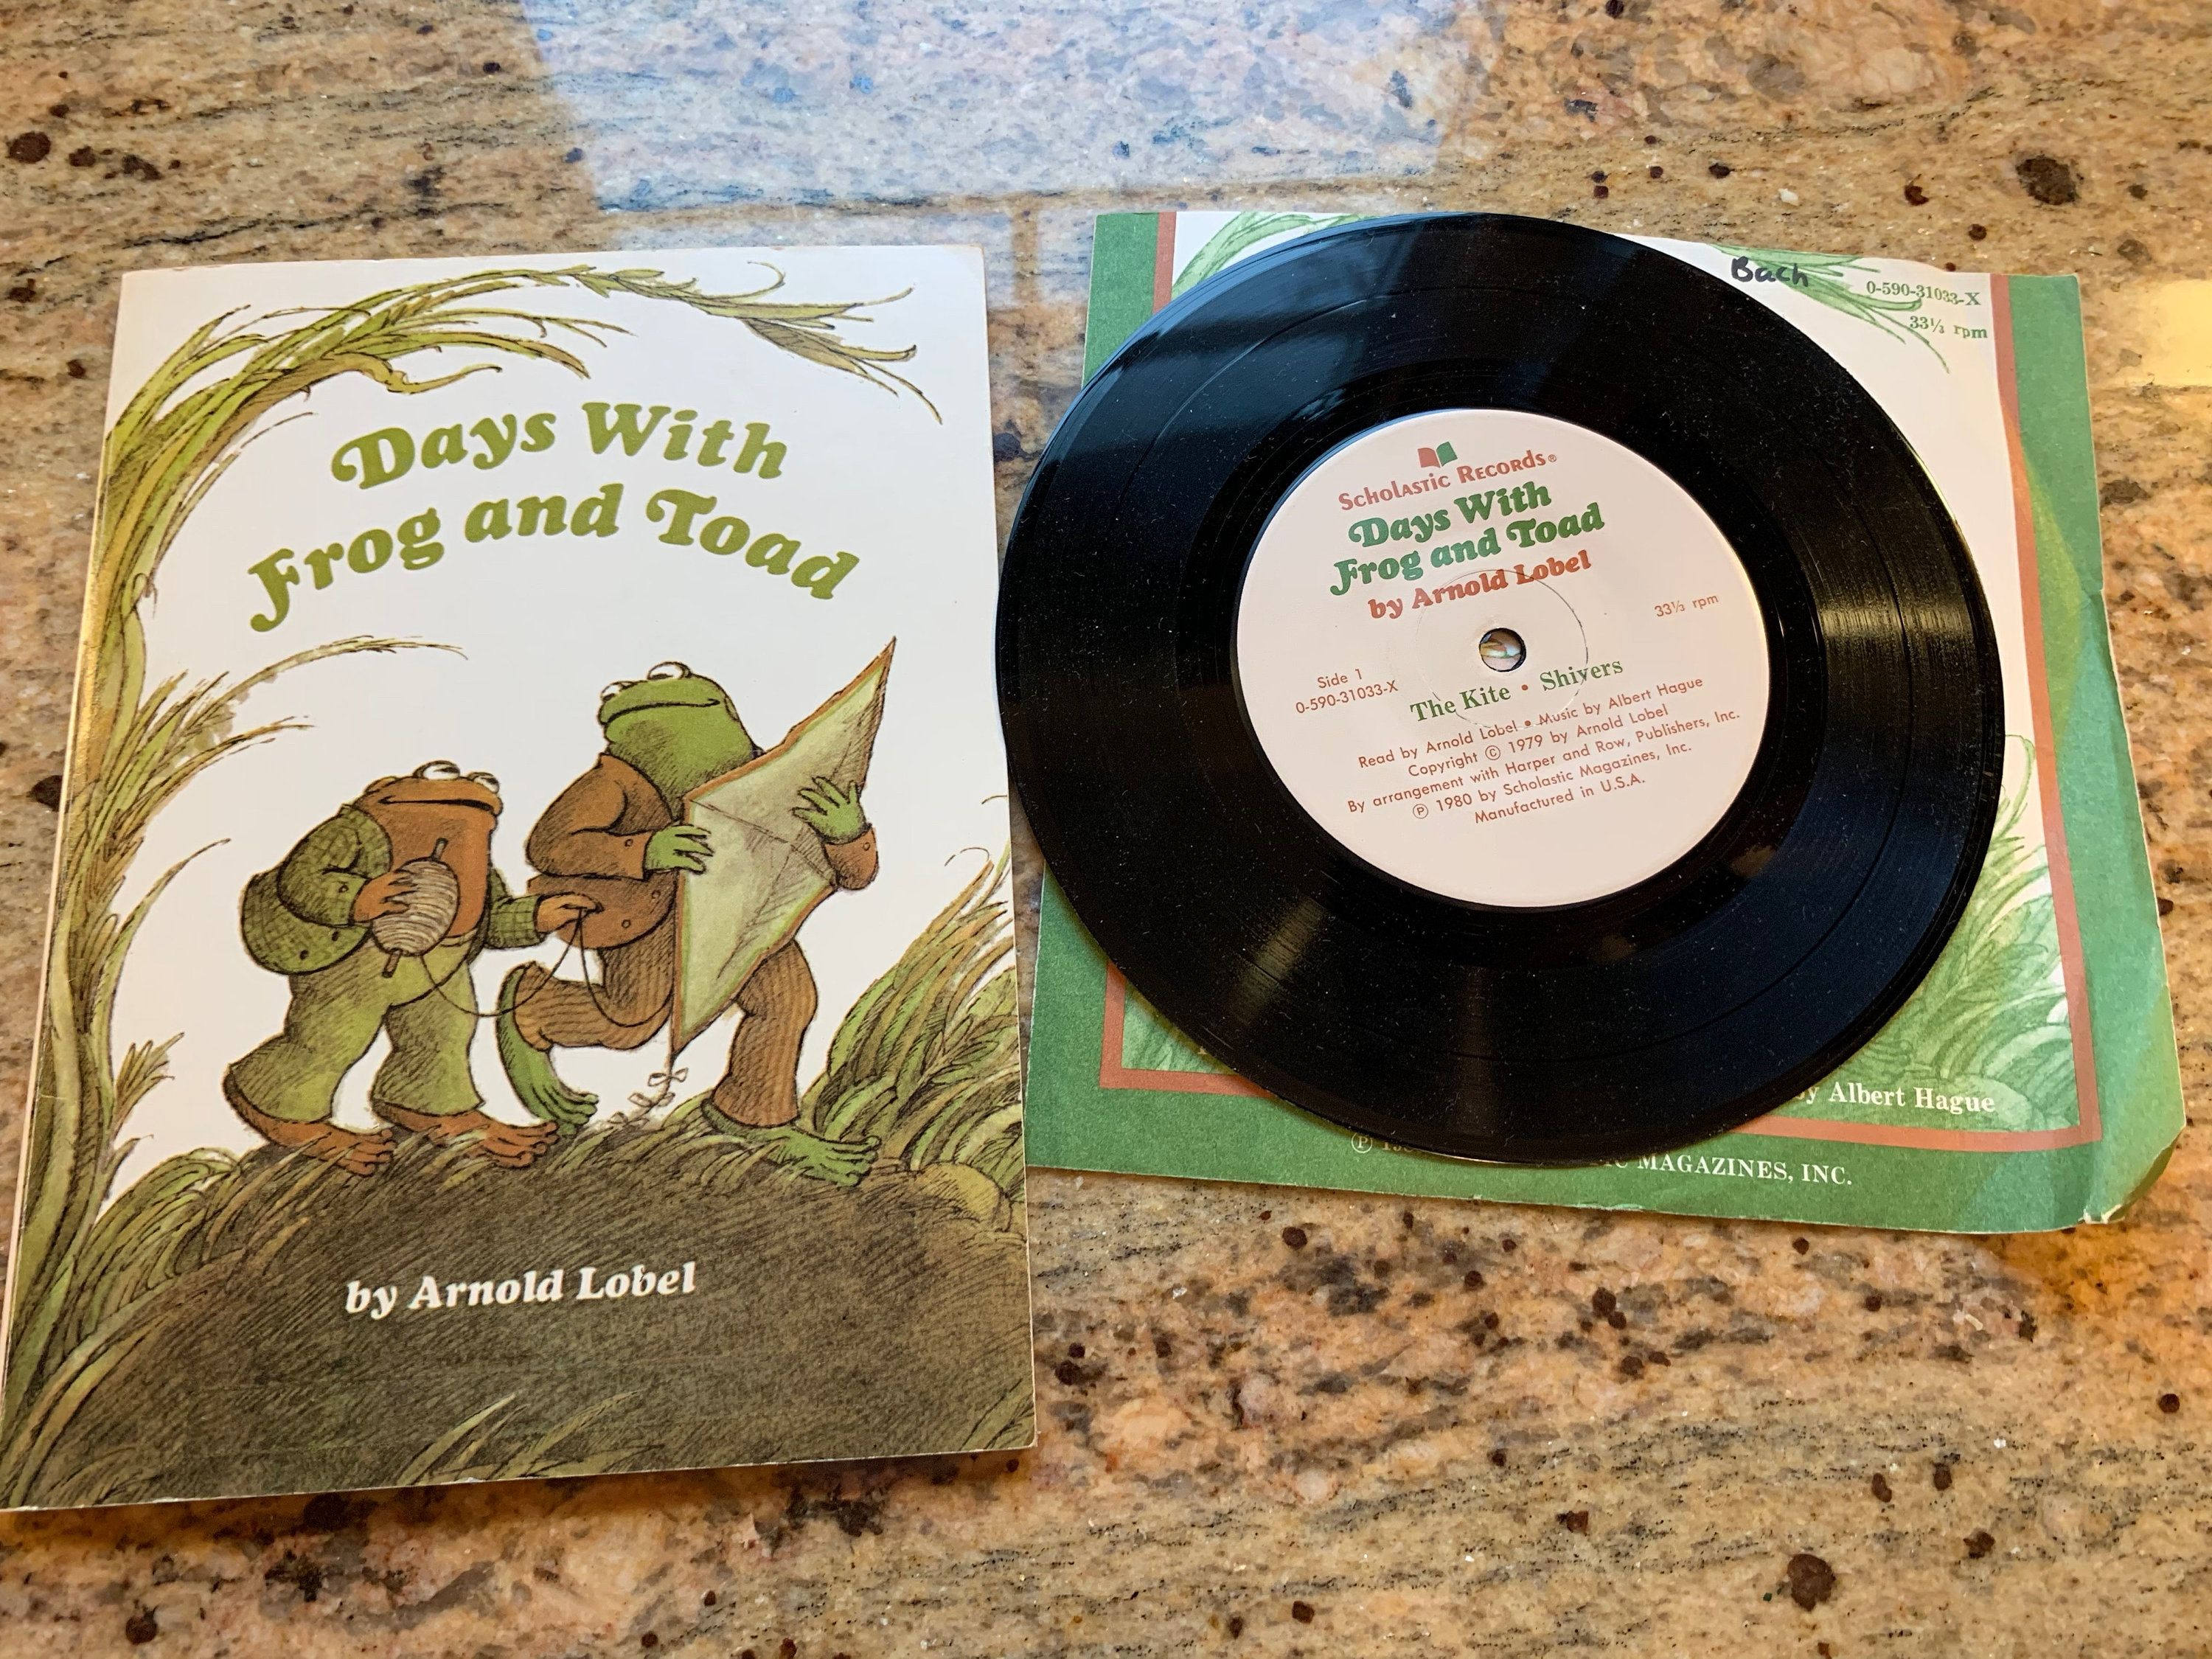 Days With Frog And Toad Book And Record